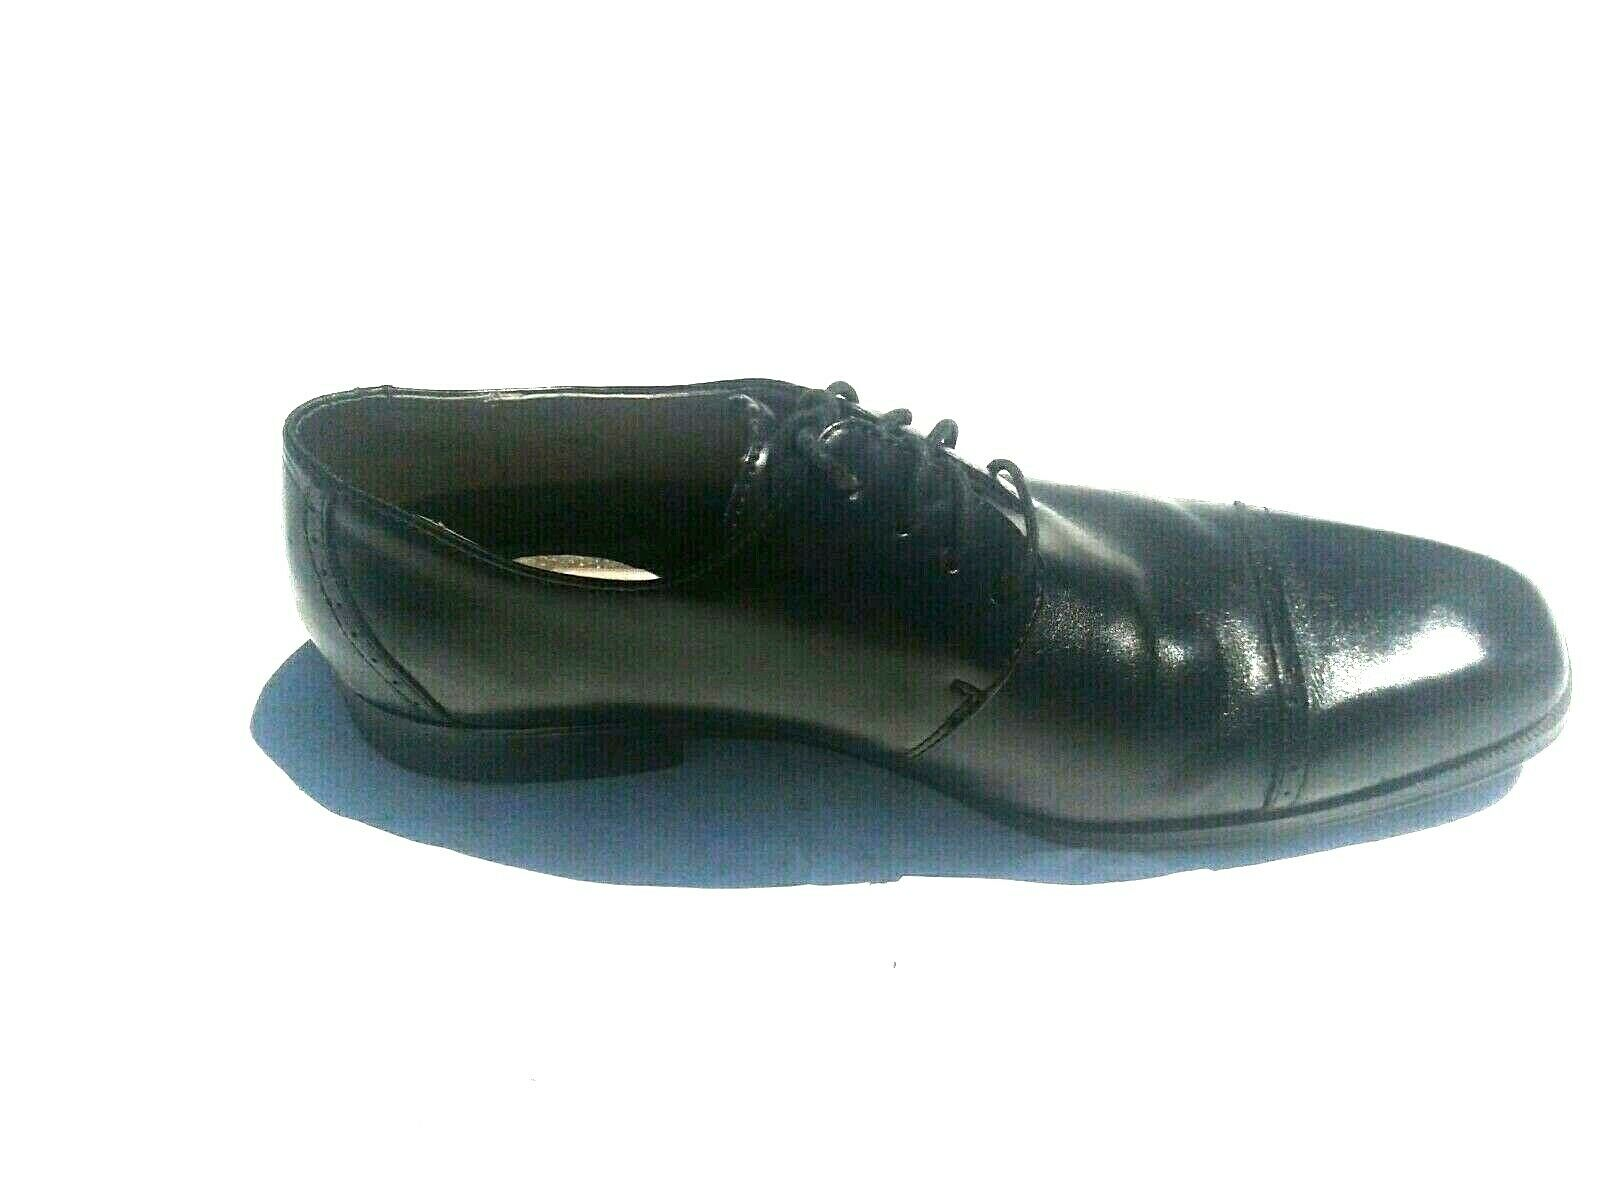 AMPUTEE Joseph Abboud Size 8.5M Black Leather Oxford Lace Up Left Shoe ONLY